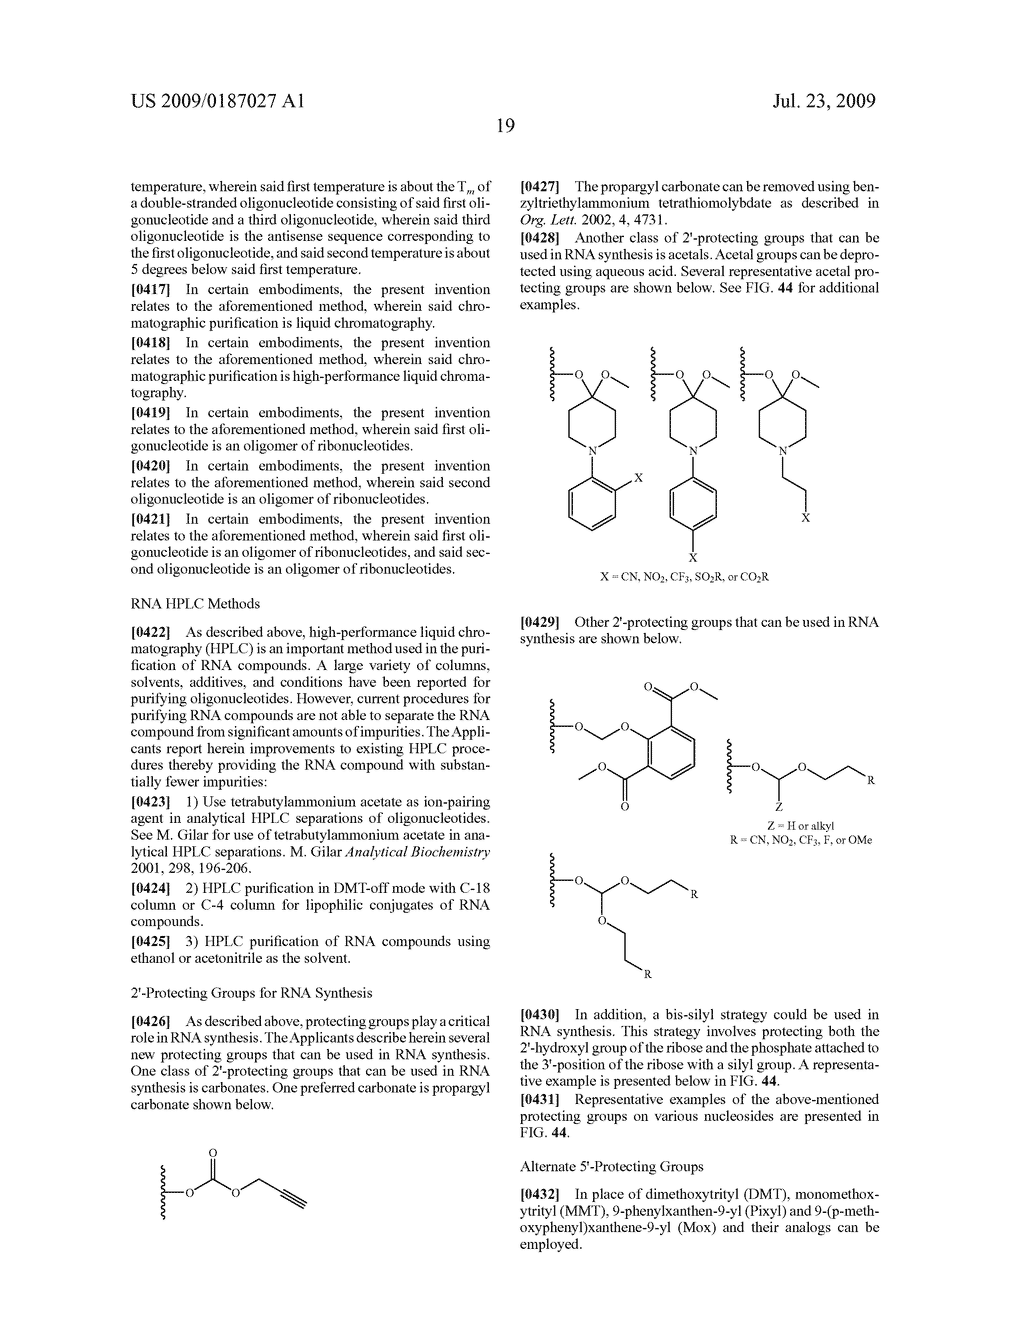 PROCESSES AND REAGENTS FOR SULFURIZATION OF OLIGONUCLEOTIDES - diagram, schematic, and image 71